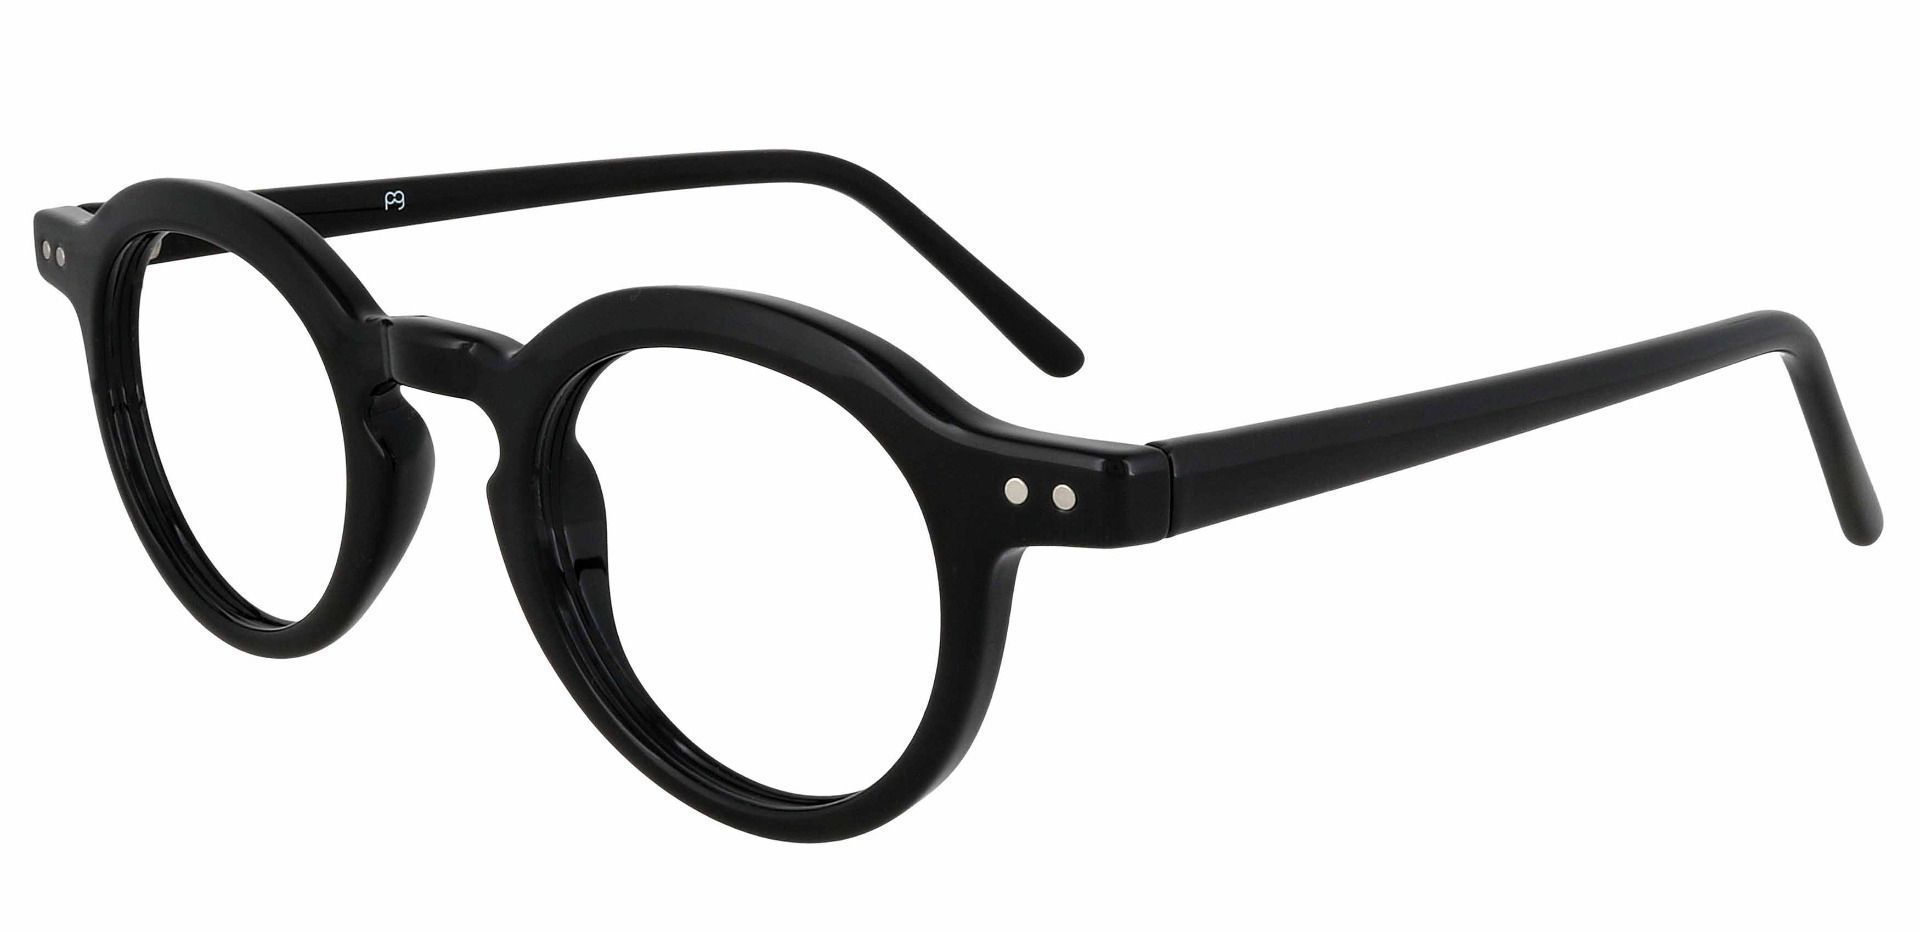 Moonshine Round Prescription Glasses - Black